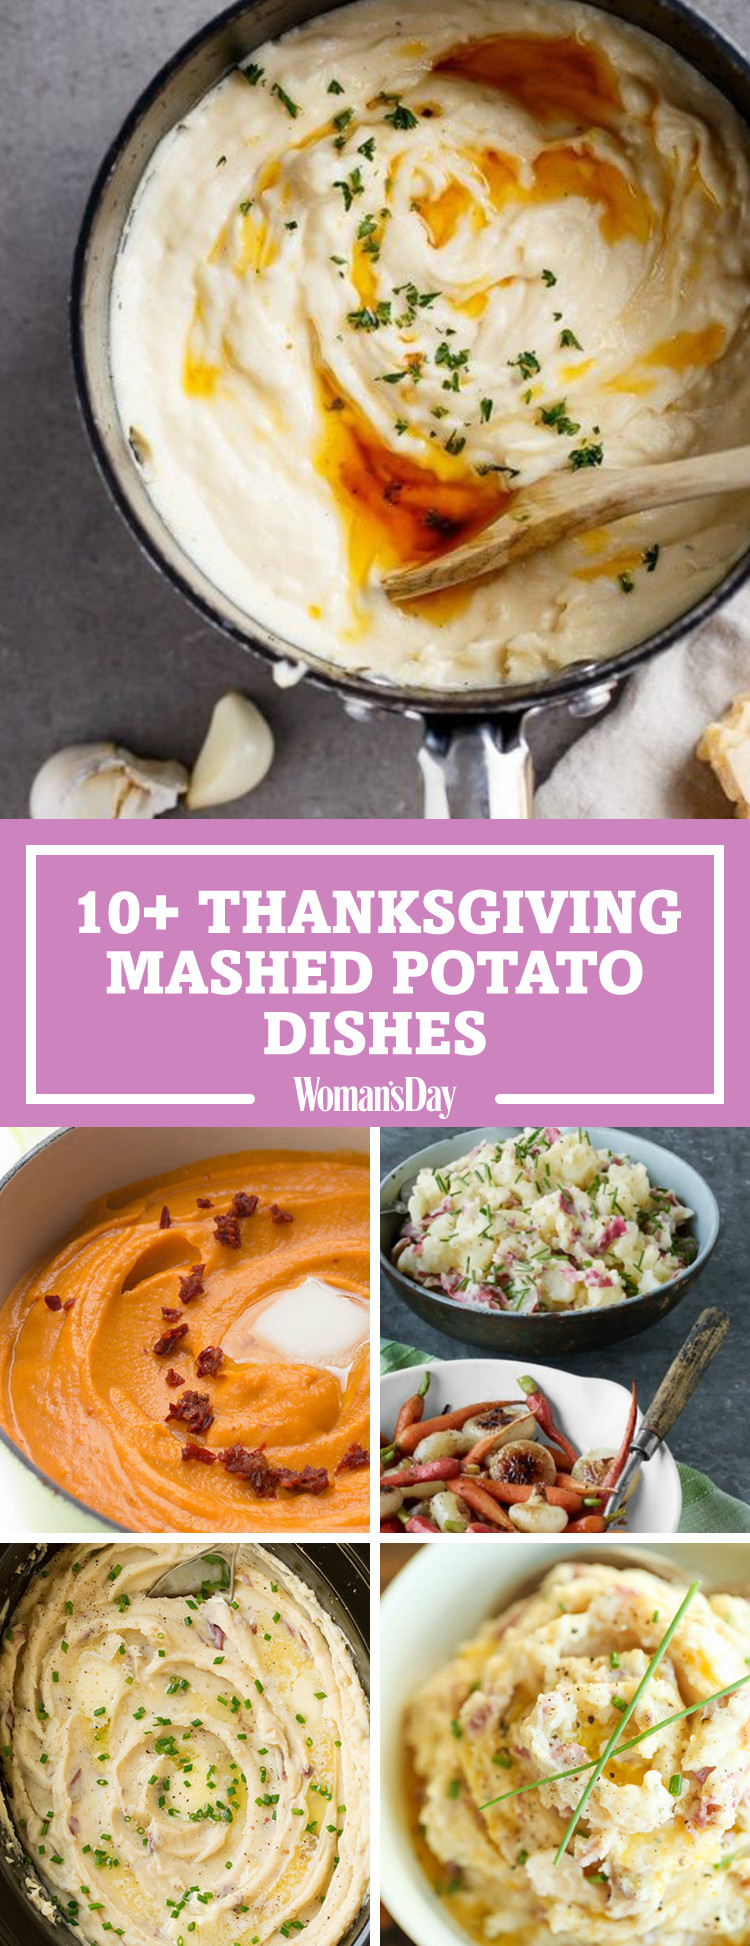 Best Mashed Potatoes For Thanksgiving  14 Best Mashed Potato Recipes How to Make Mashed